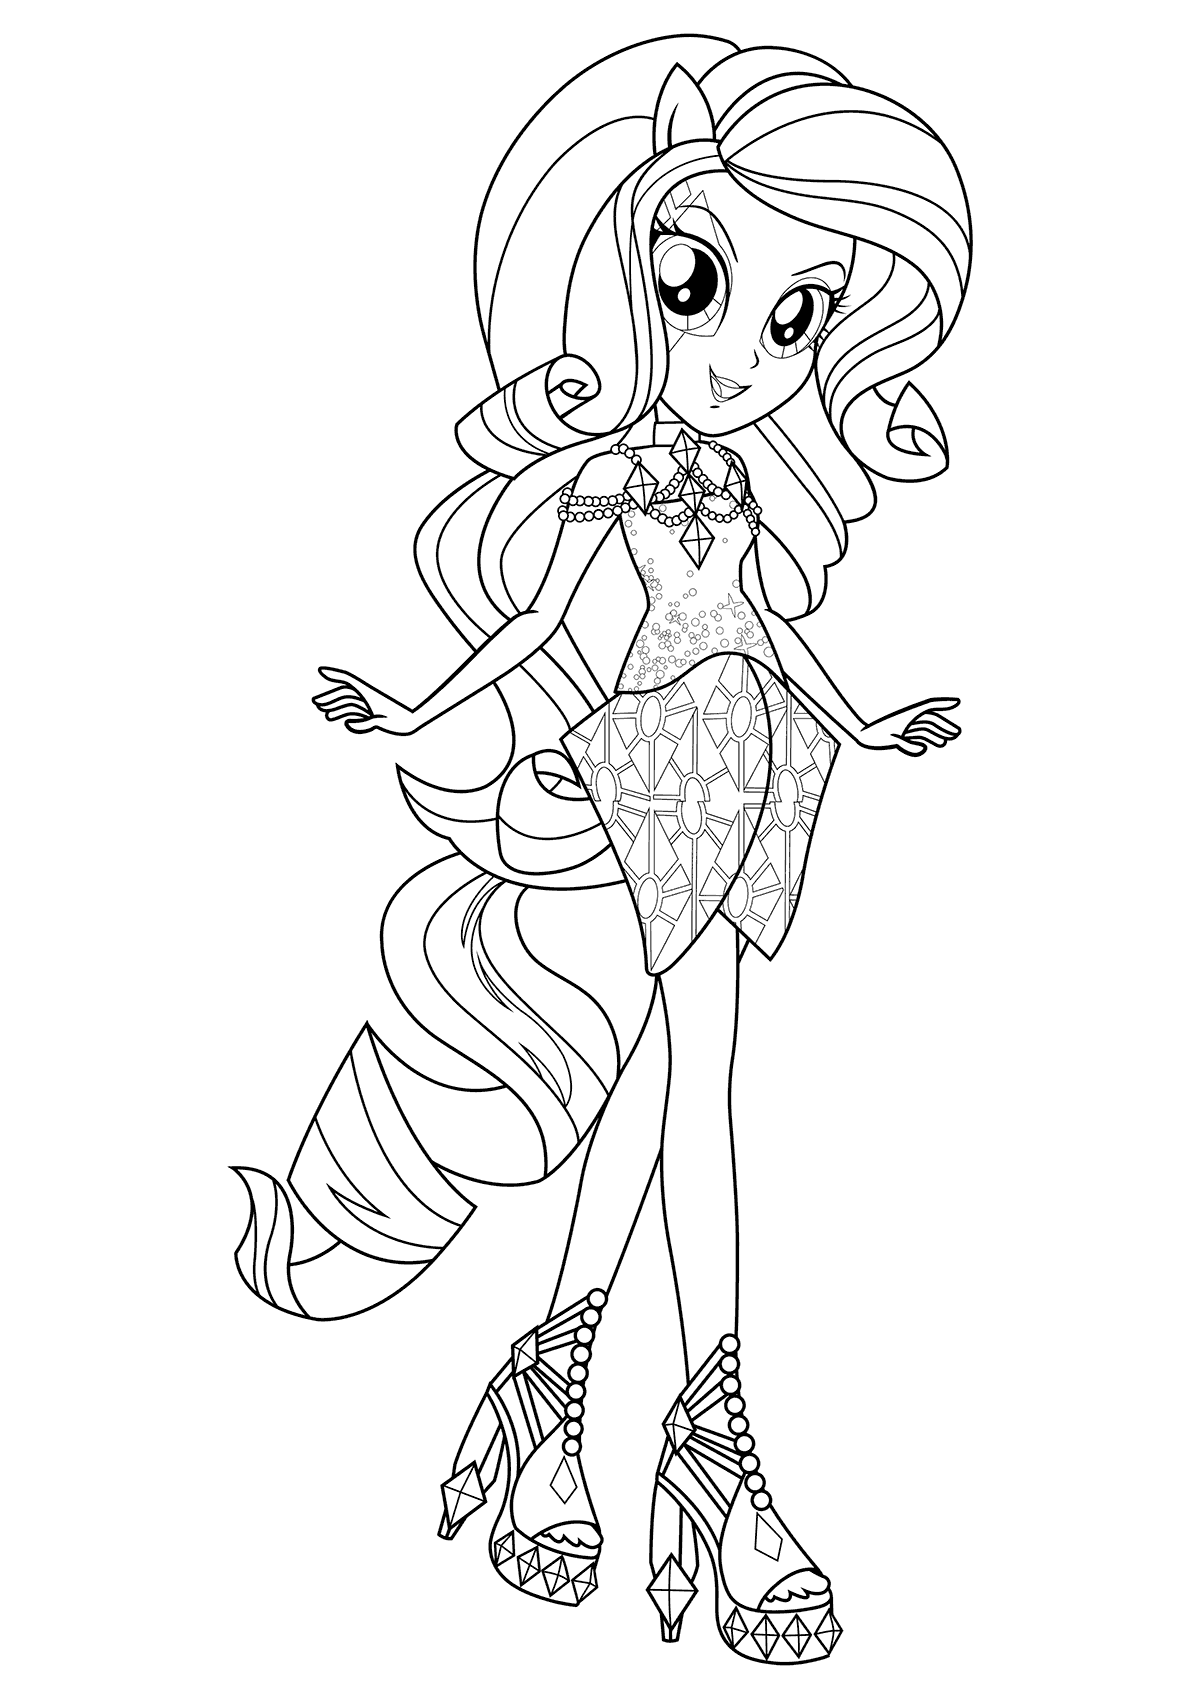 girl colouring pictures ladies coloring pages to download and print for free pictures colouring girl